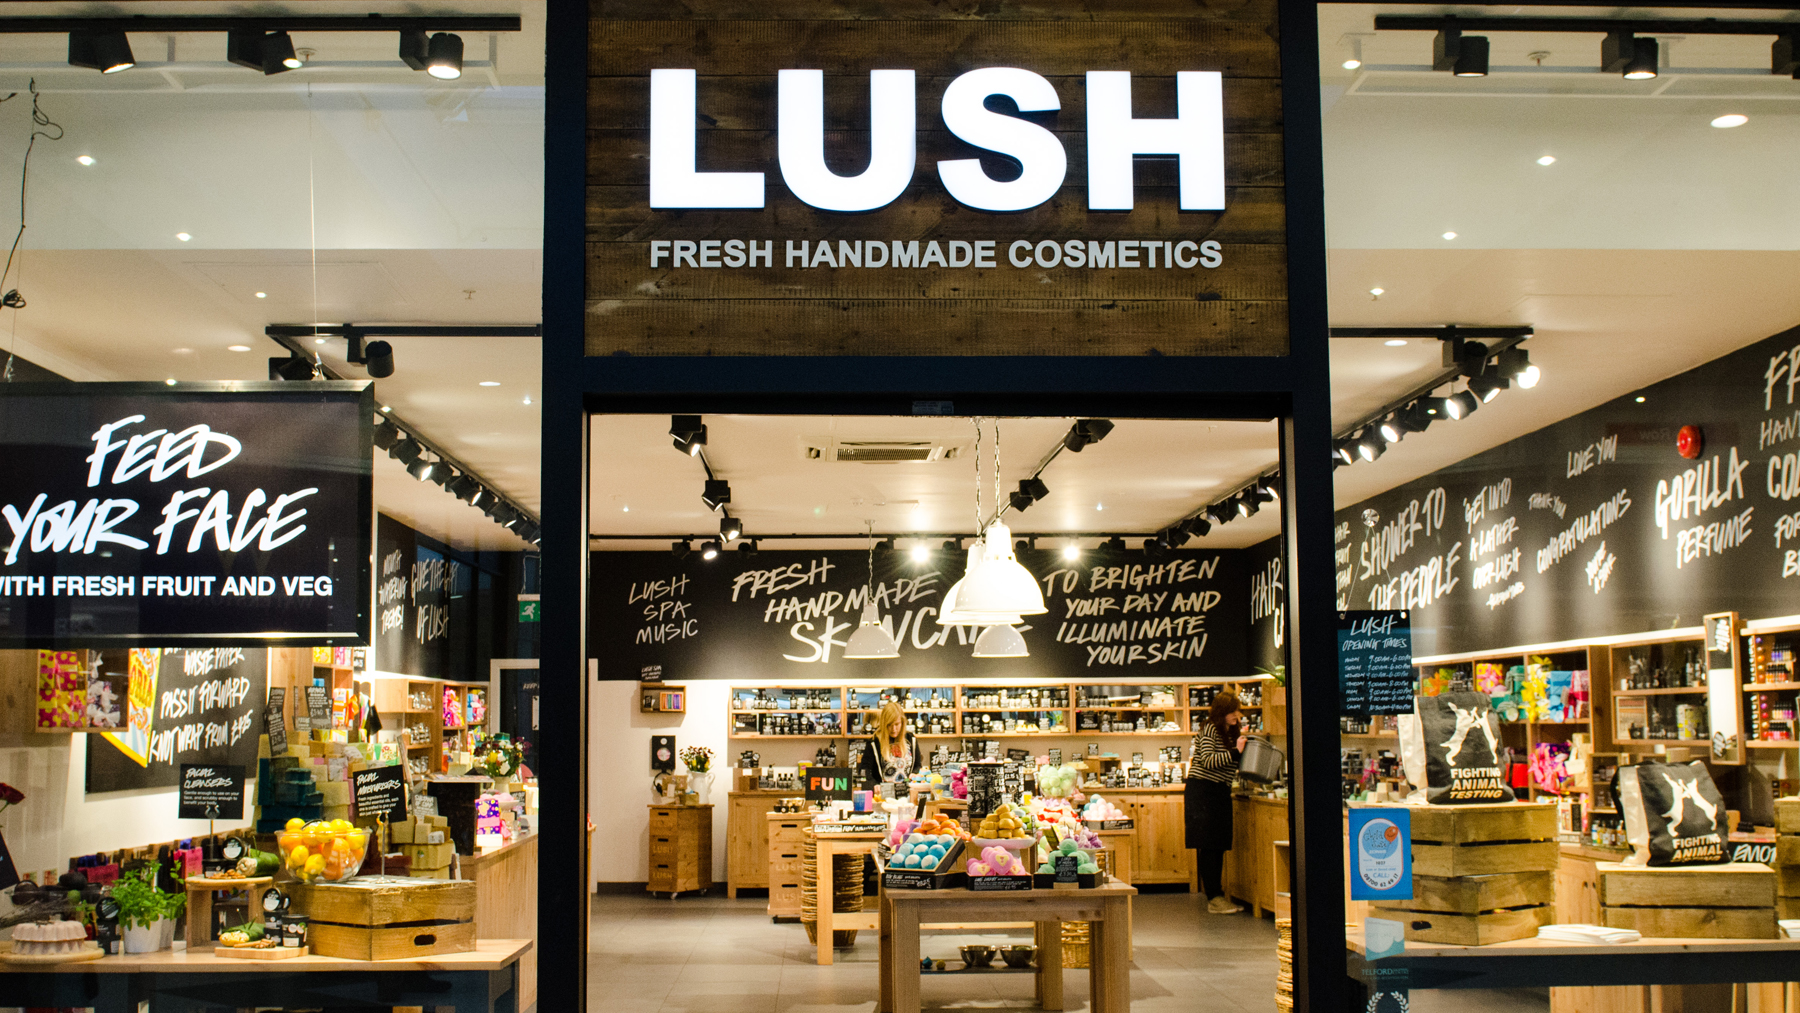 lush cosmetics pestel analysis Health spa pestle analysis - the pestle analysis then goes on to look at the economic impact on the health spa industry.